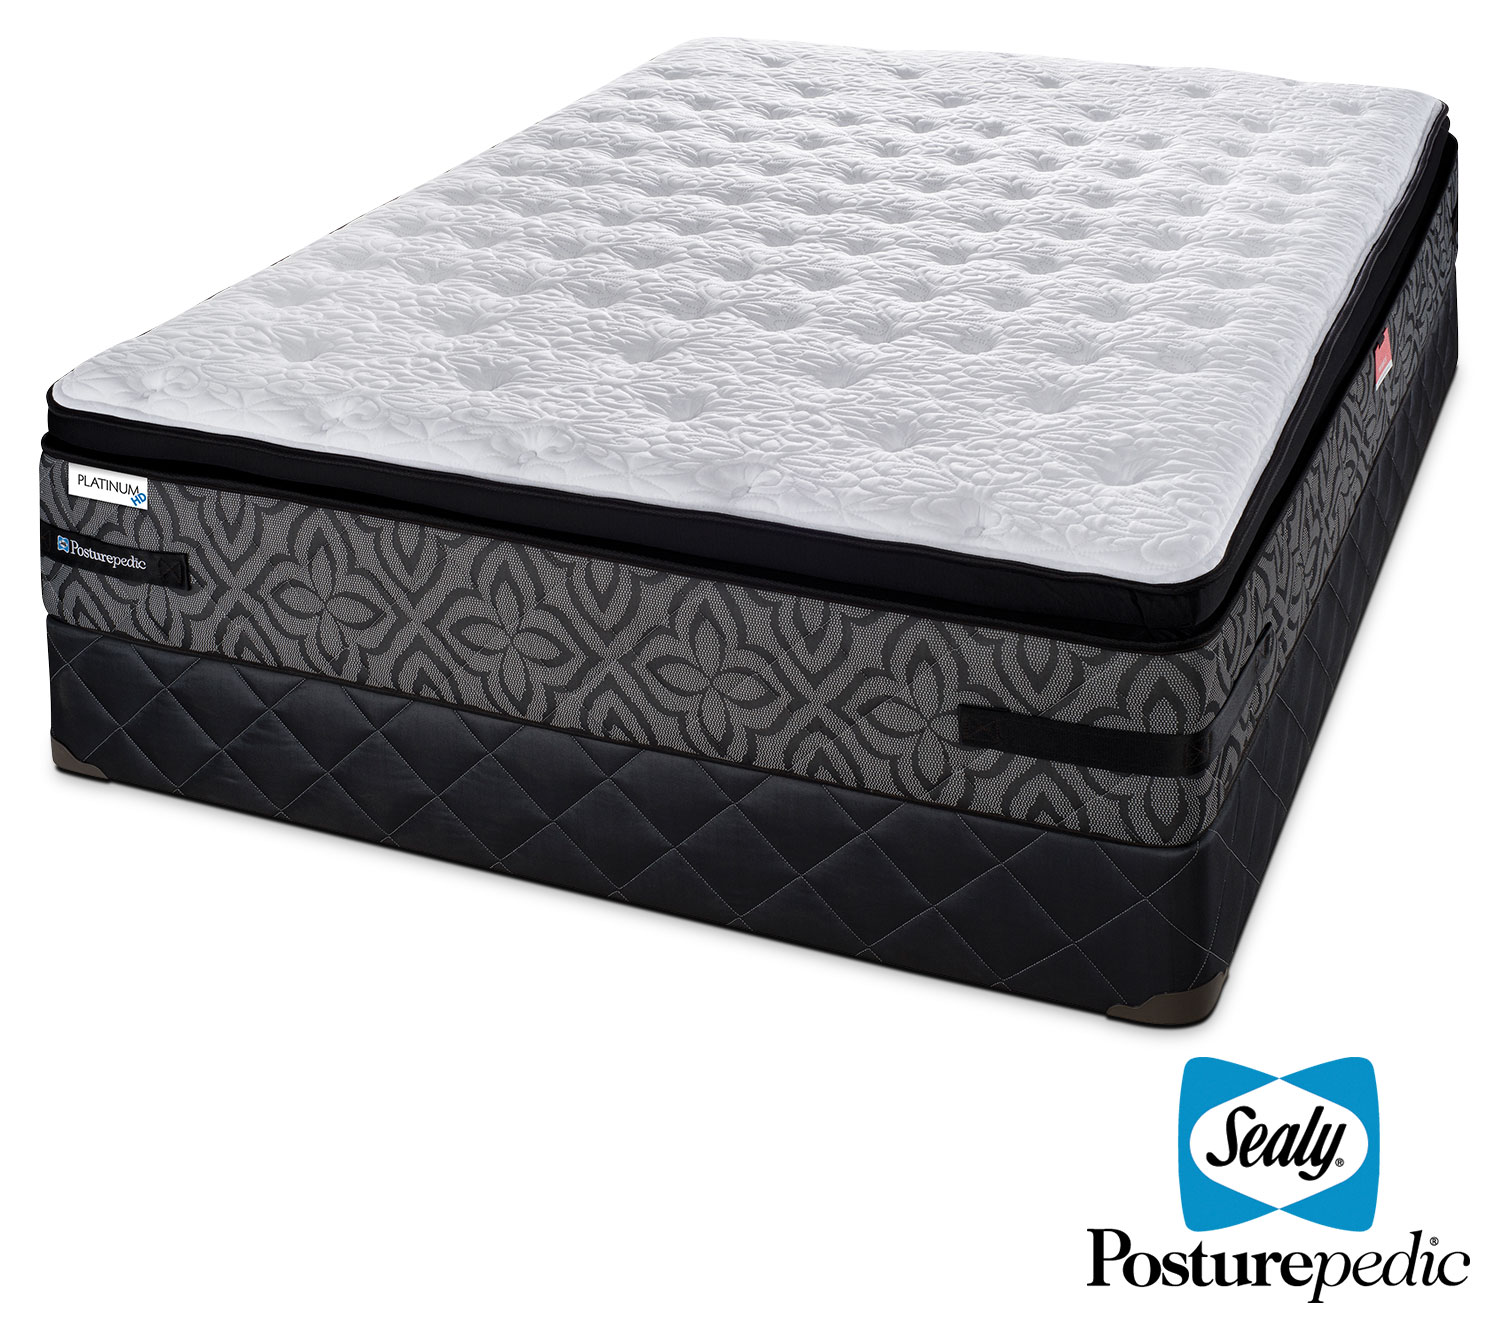 Sealy Posturepedic 2 K Firm Full Mattress and Boxspring Set